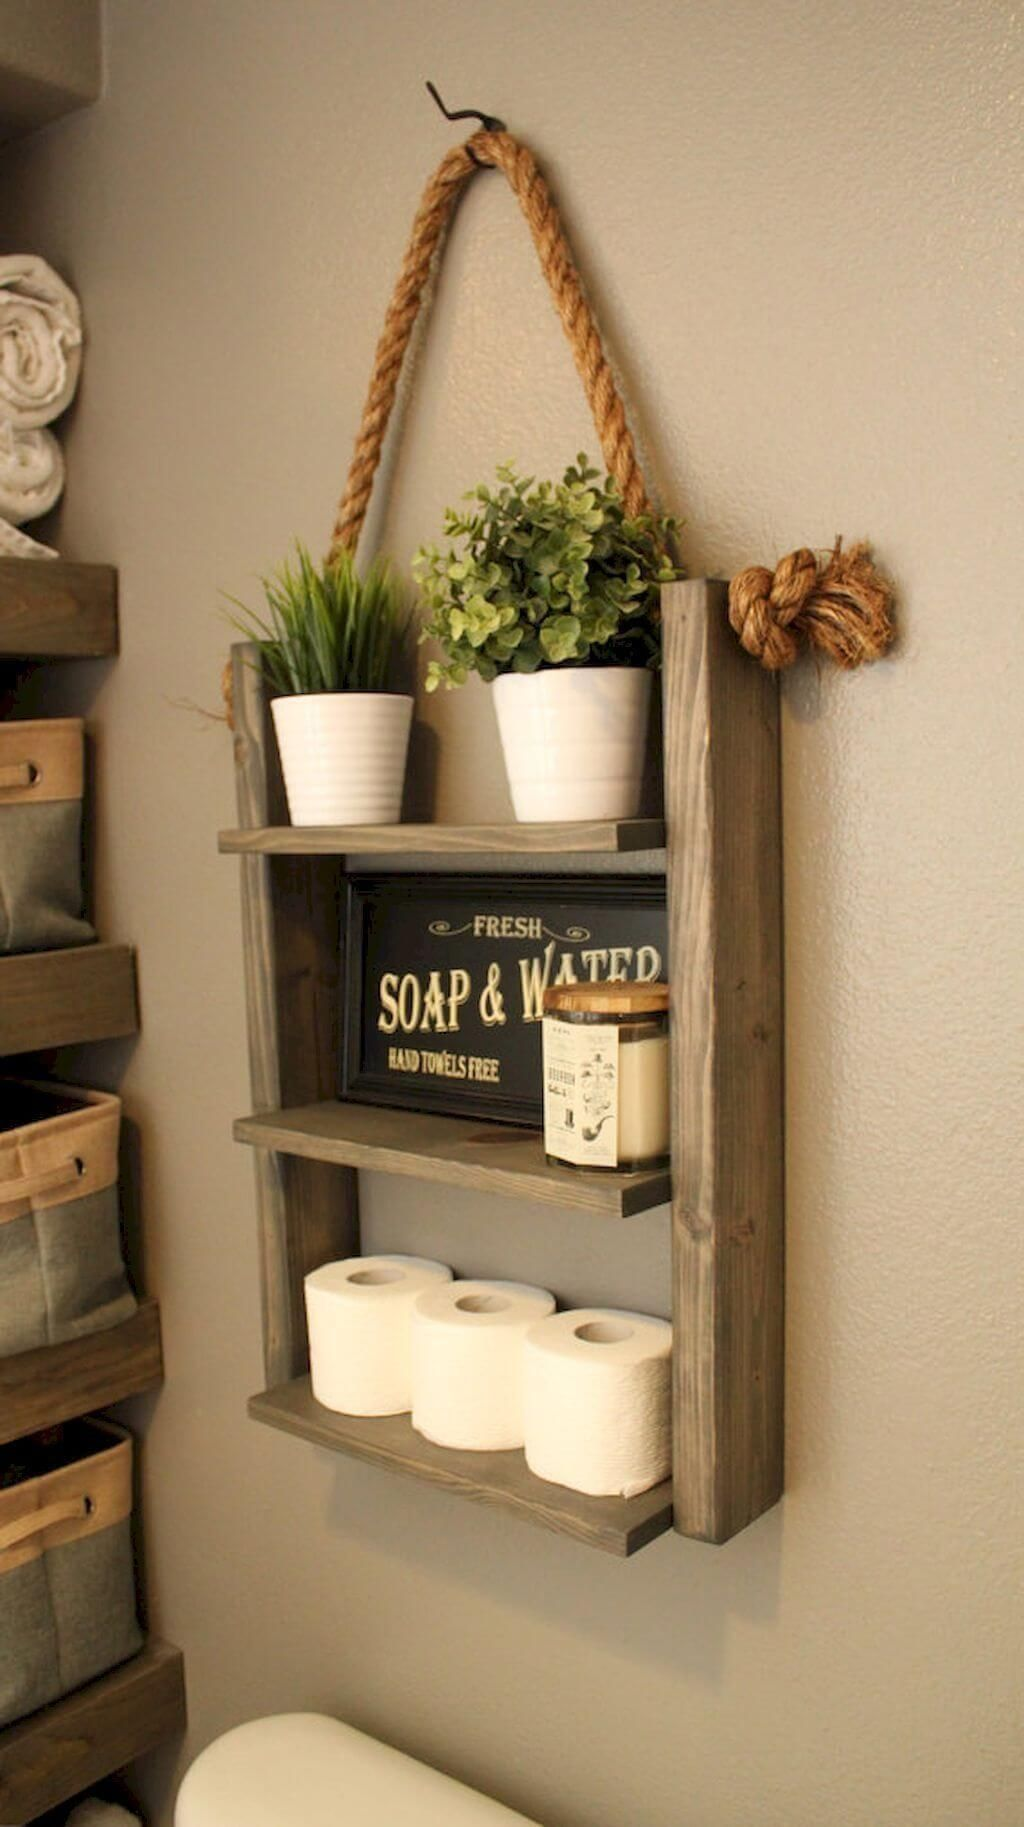 26 Farmhouse Shelf Decor Ideas that are both Functional and Gorgeous